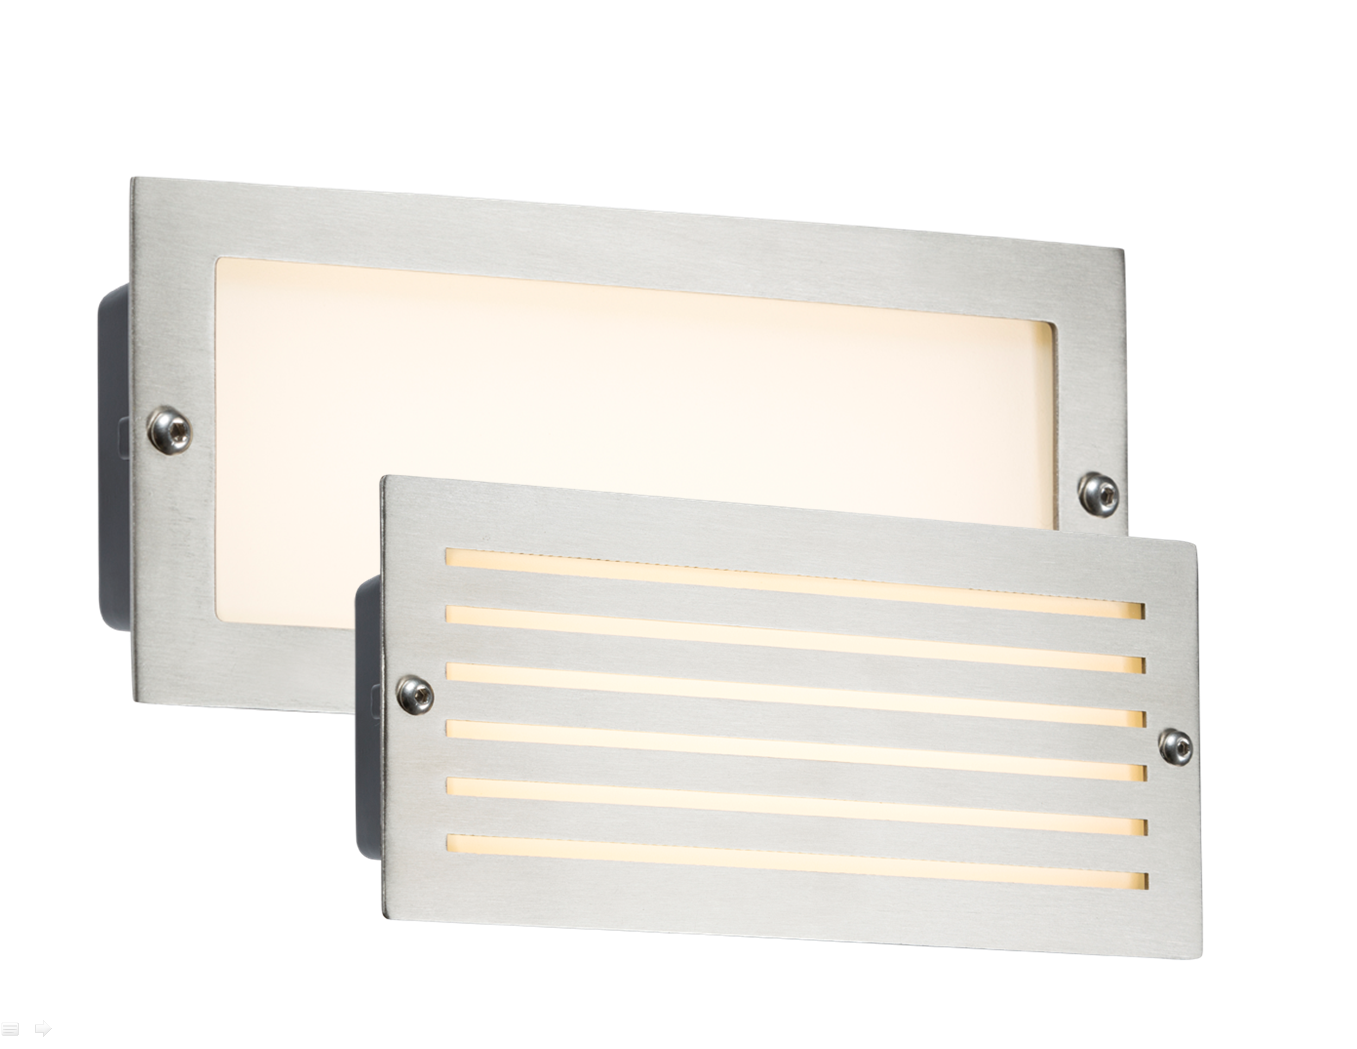 230V IP54 5W WHITE LED BRICK LIGHT - BRUSHED STEEL FASCIA